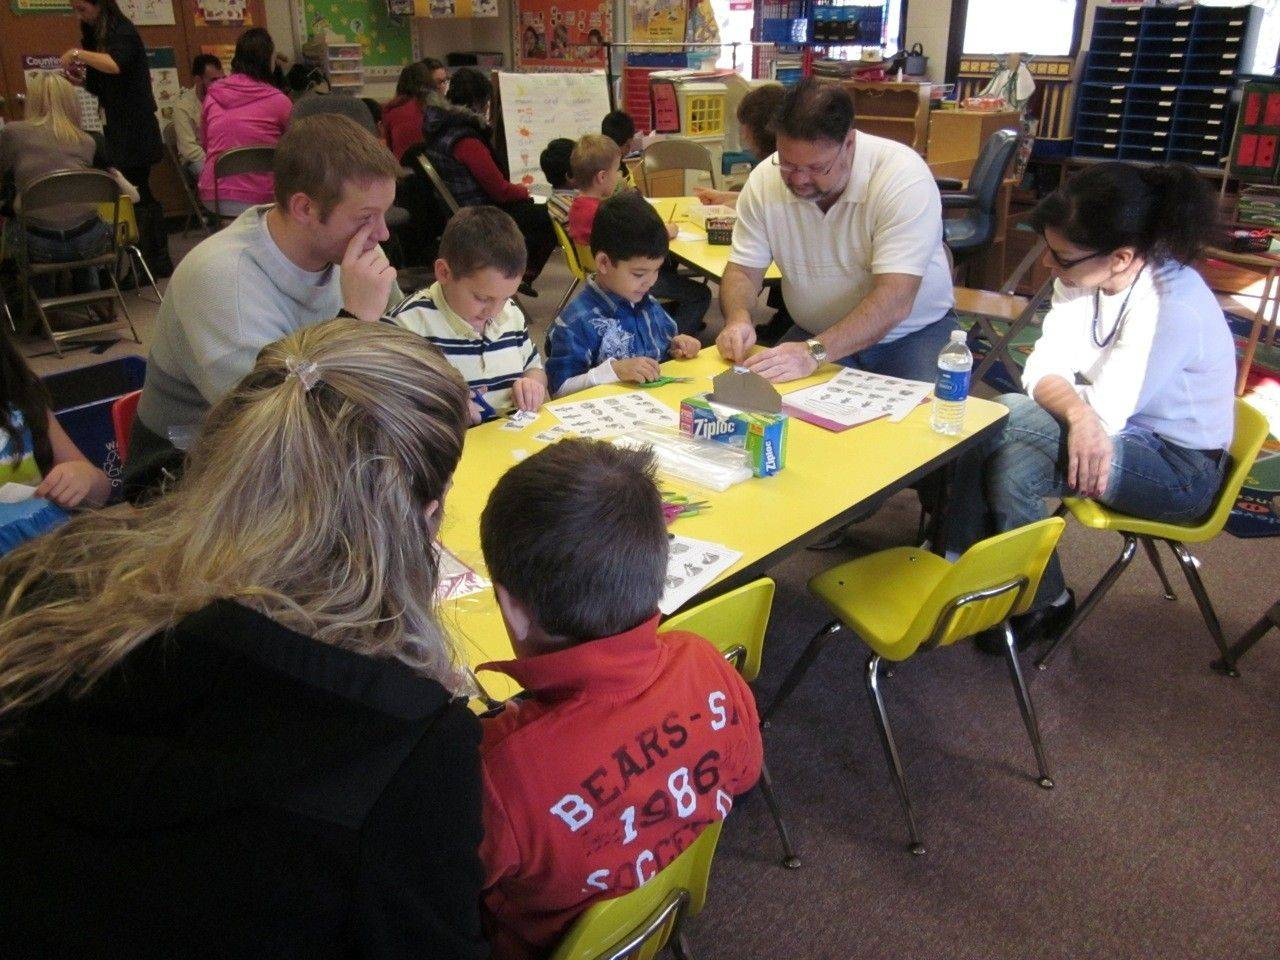 Plainfield parents joined their children at a Kindergarten Family Literacy Night hosted by Plainfield Elementary School. Pictured, from left, facing camera: James Kurtz, Aidan Kurtz, Daniel Owens and Jerome and Maria Owens.